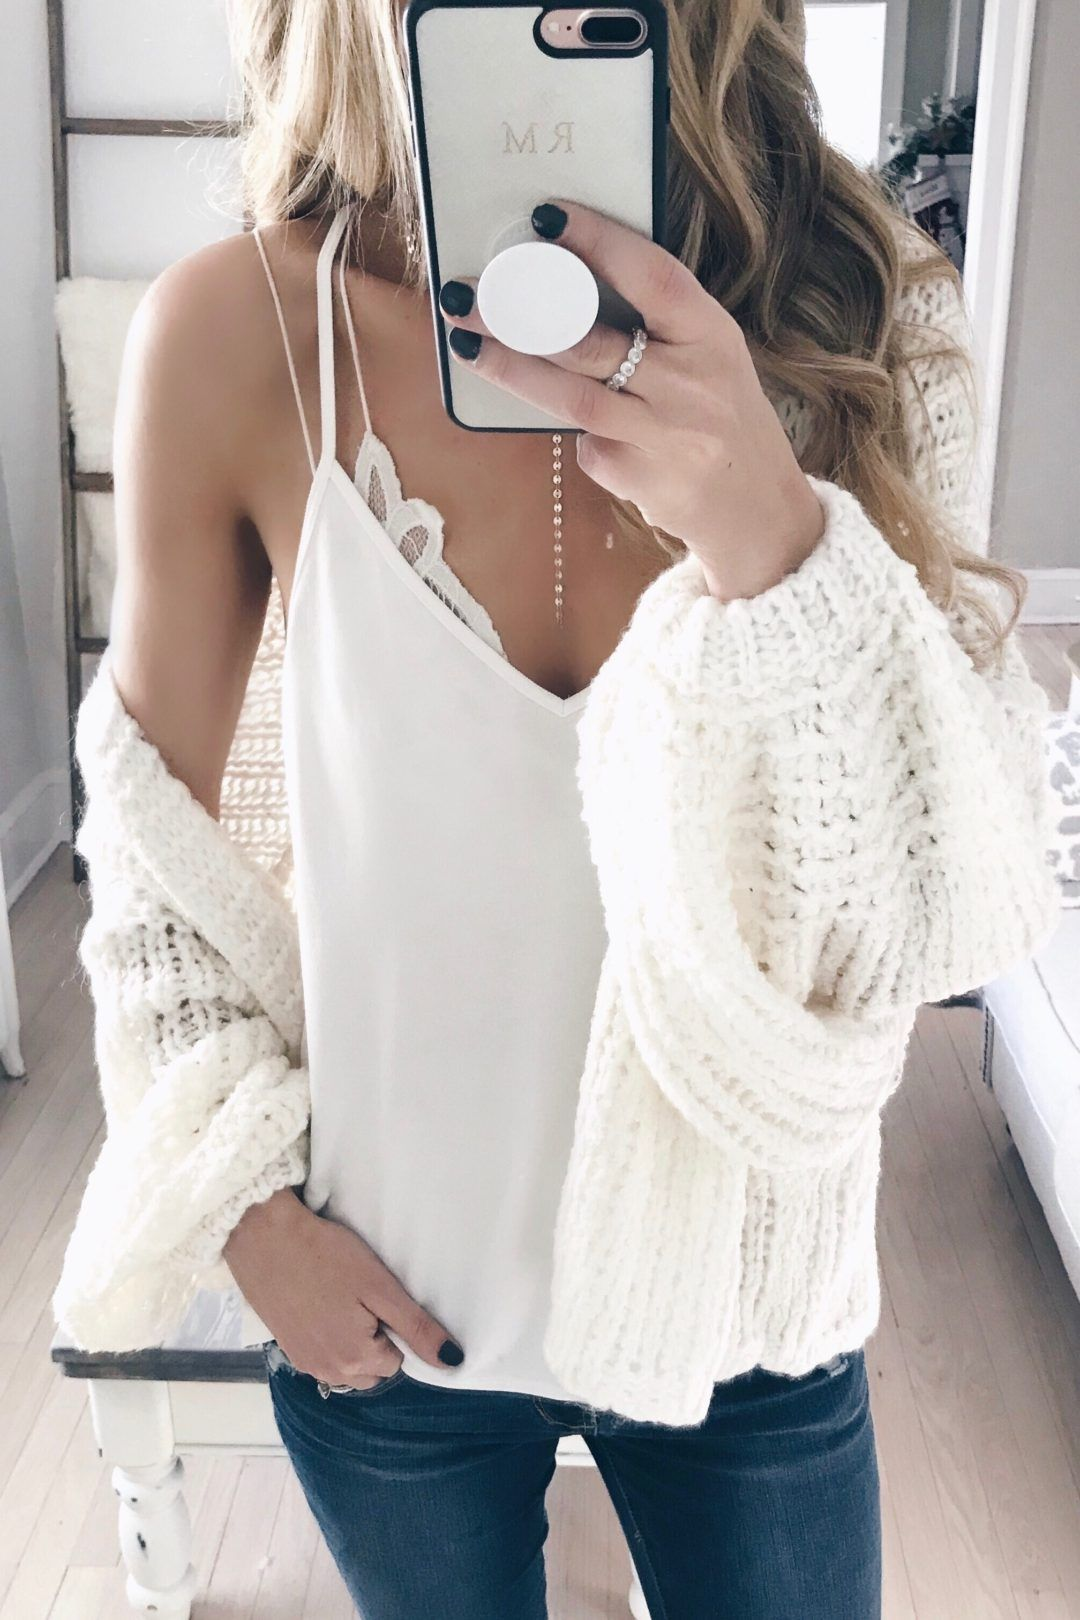 2864b4a68a1ce Top Outfits of 2017 from Pinteresting Plans LifeStyle Blog ...